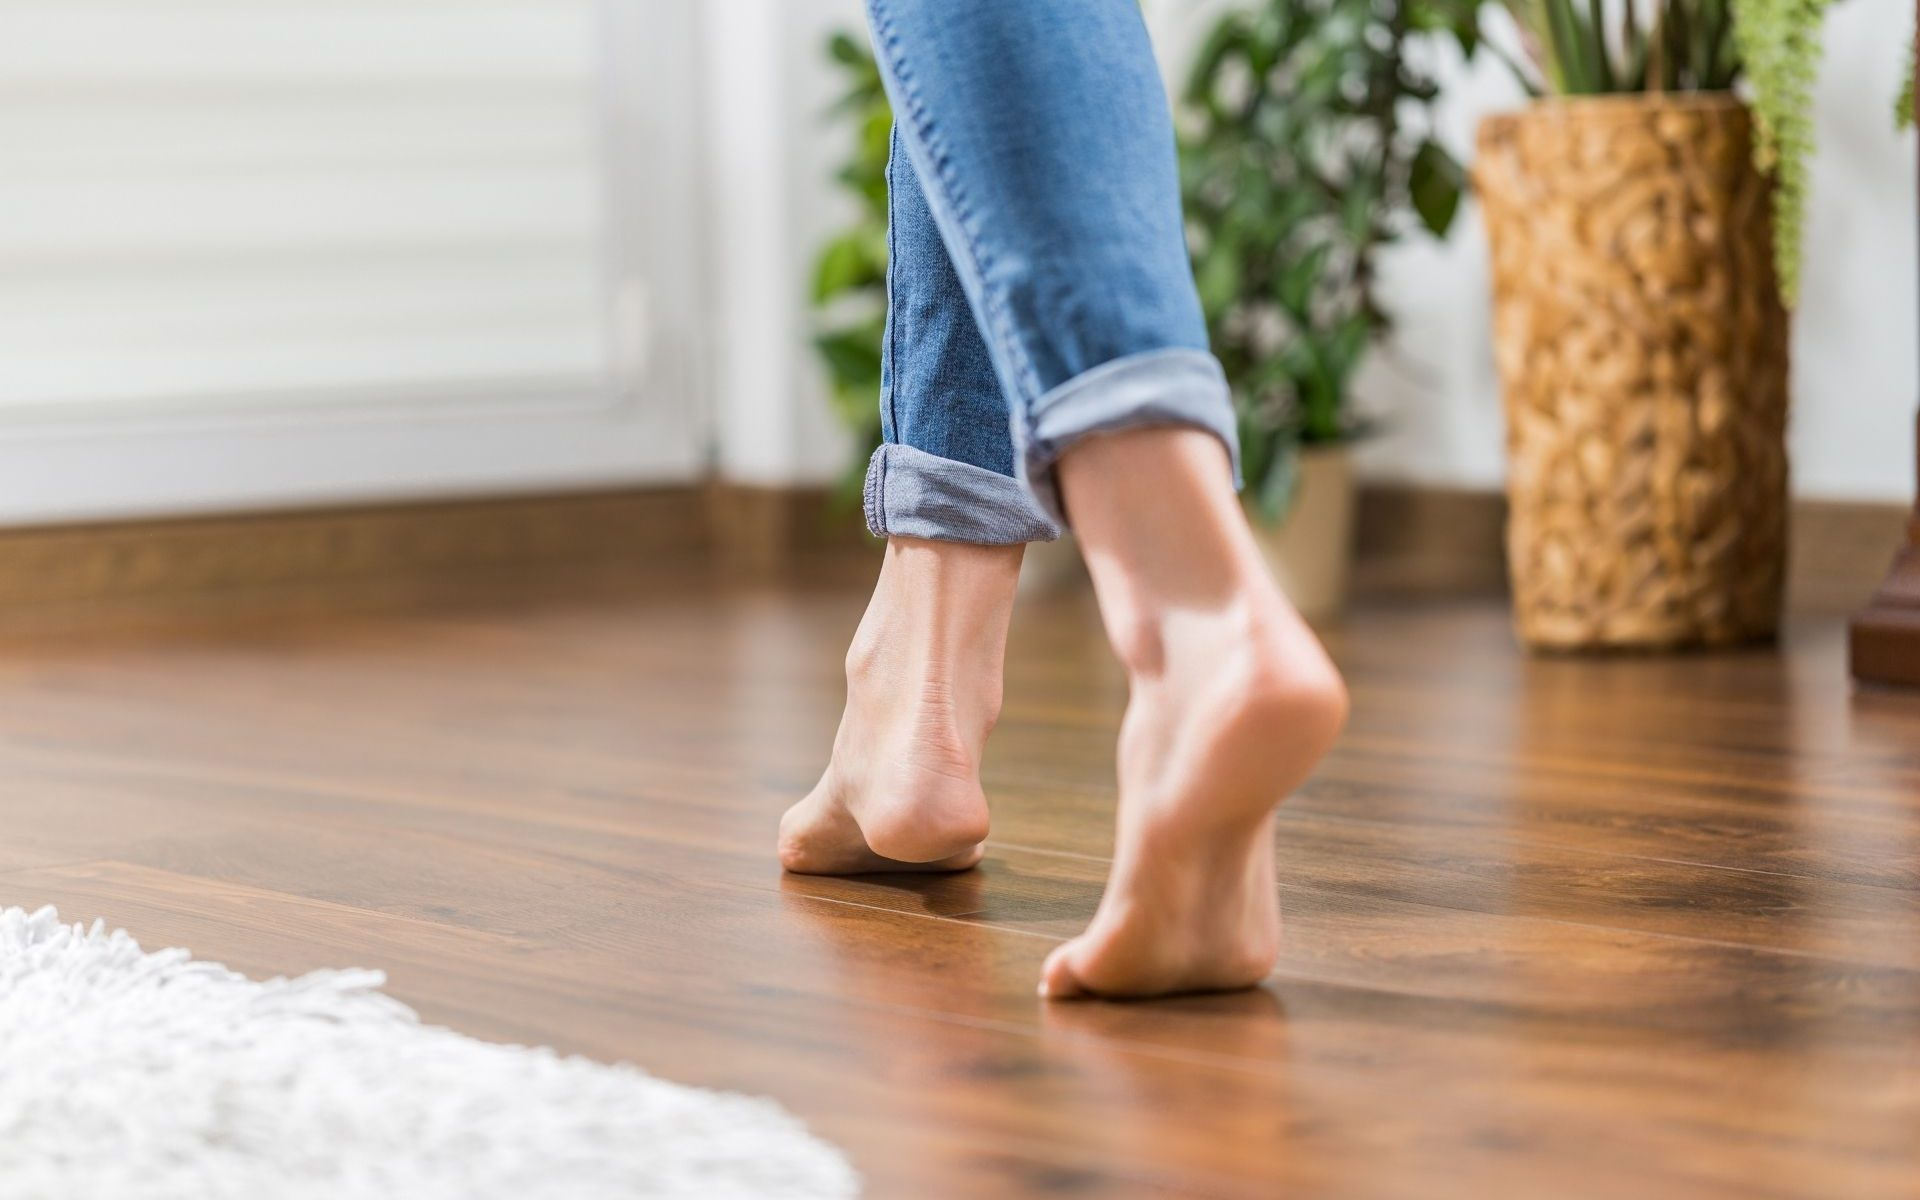 Woman walking on a wooden floor